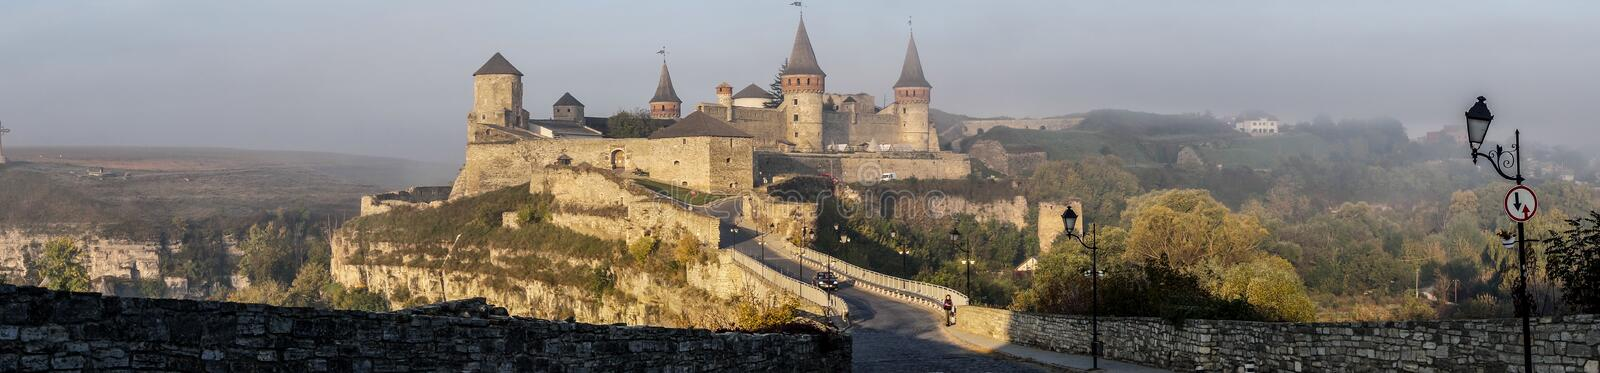 Epic Wonder Medieval Kamianets-Podilskyi Castle – Panoramic stock images